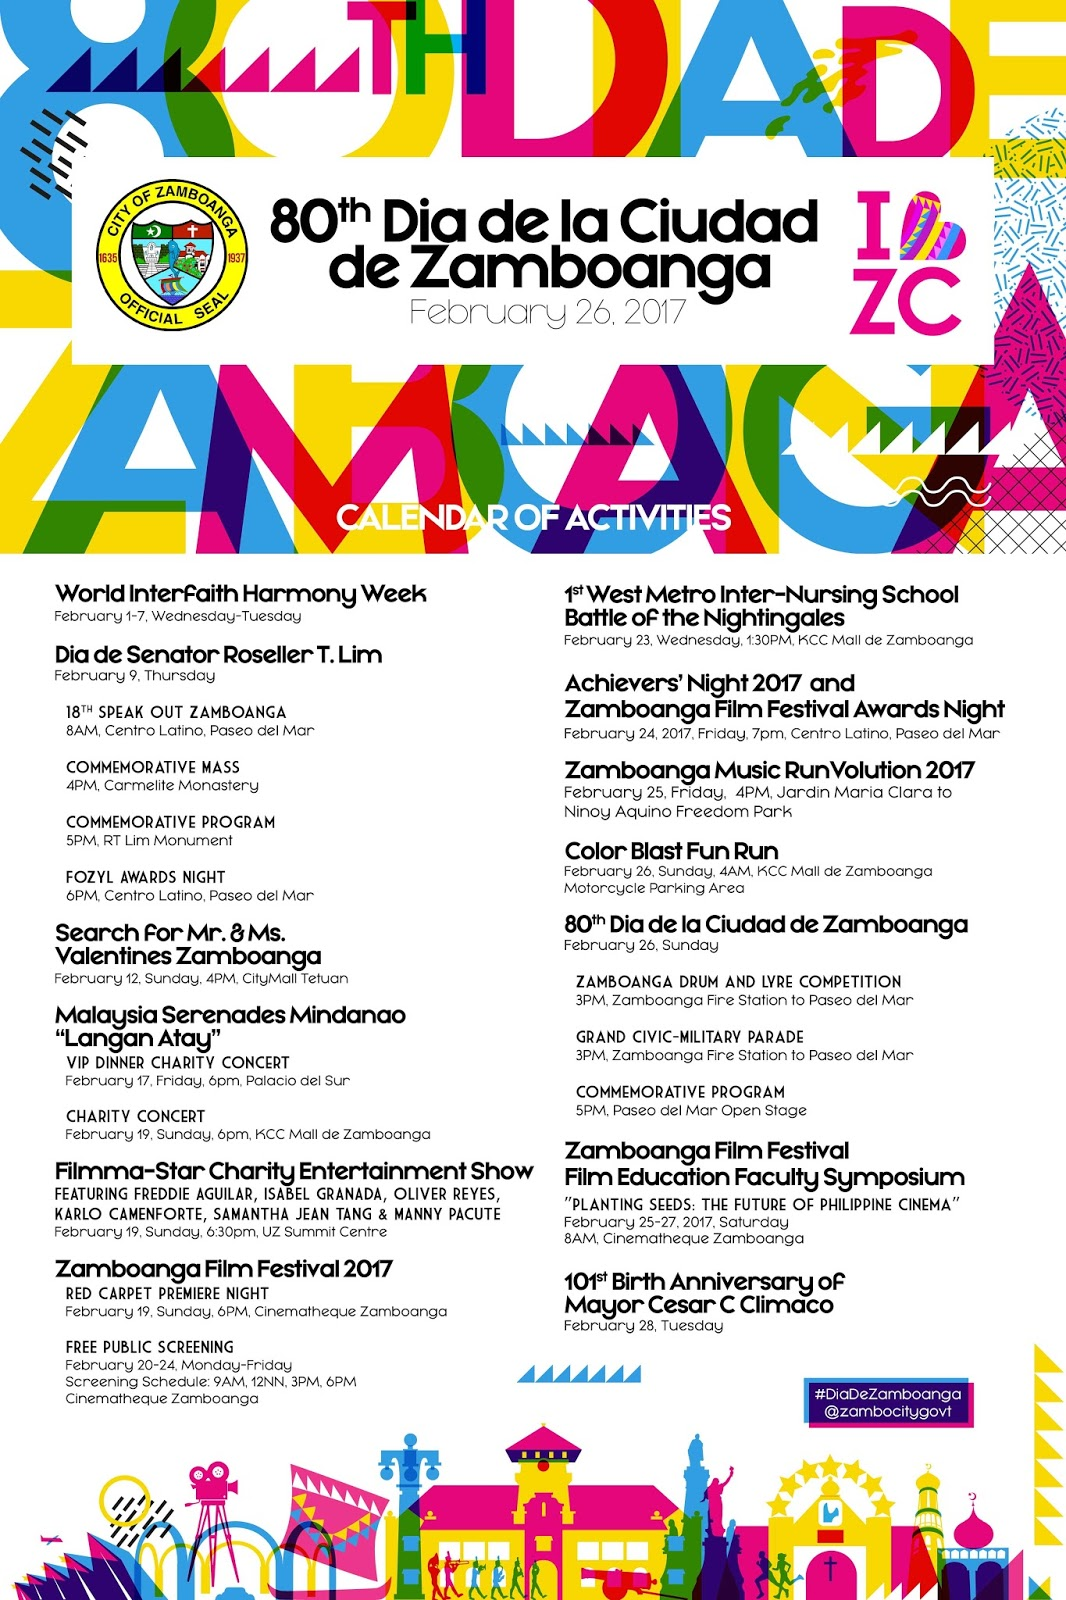 80th Dia de la Ciudad de Zamboanga Calendar of Activities Poster design